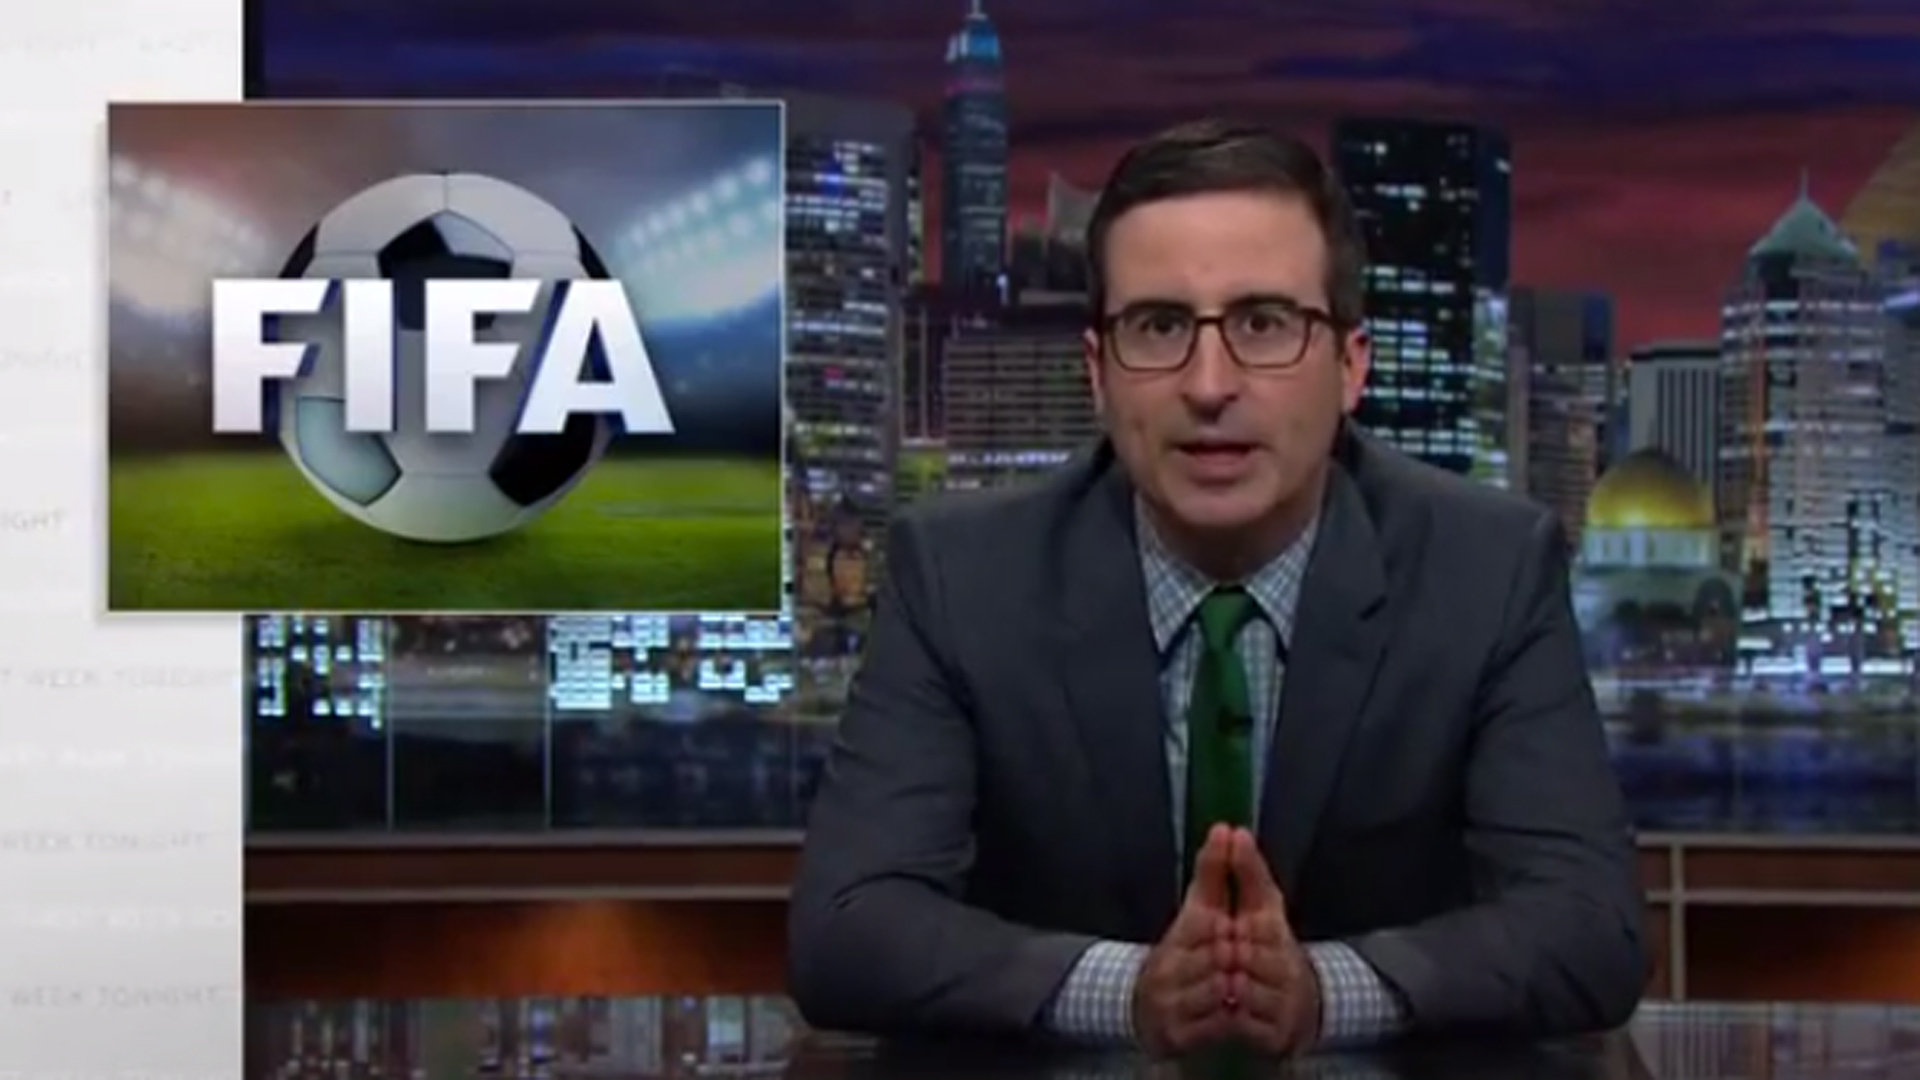 John Oliver mocks FIFA president Sepp Blatter on 'Last Week Tonight'